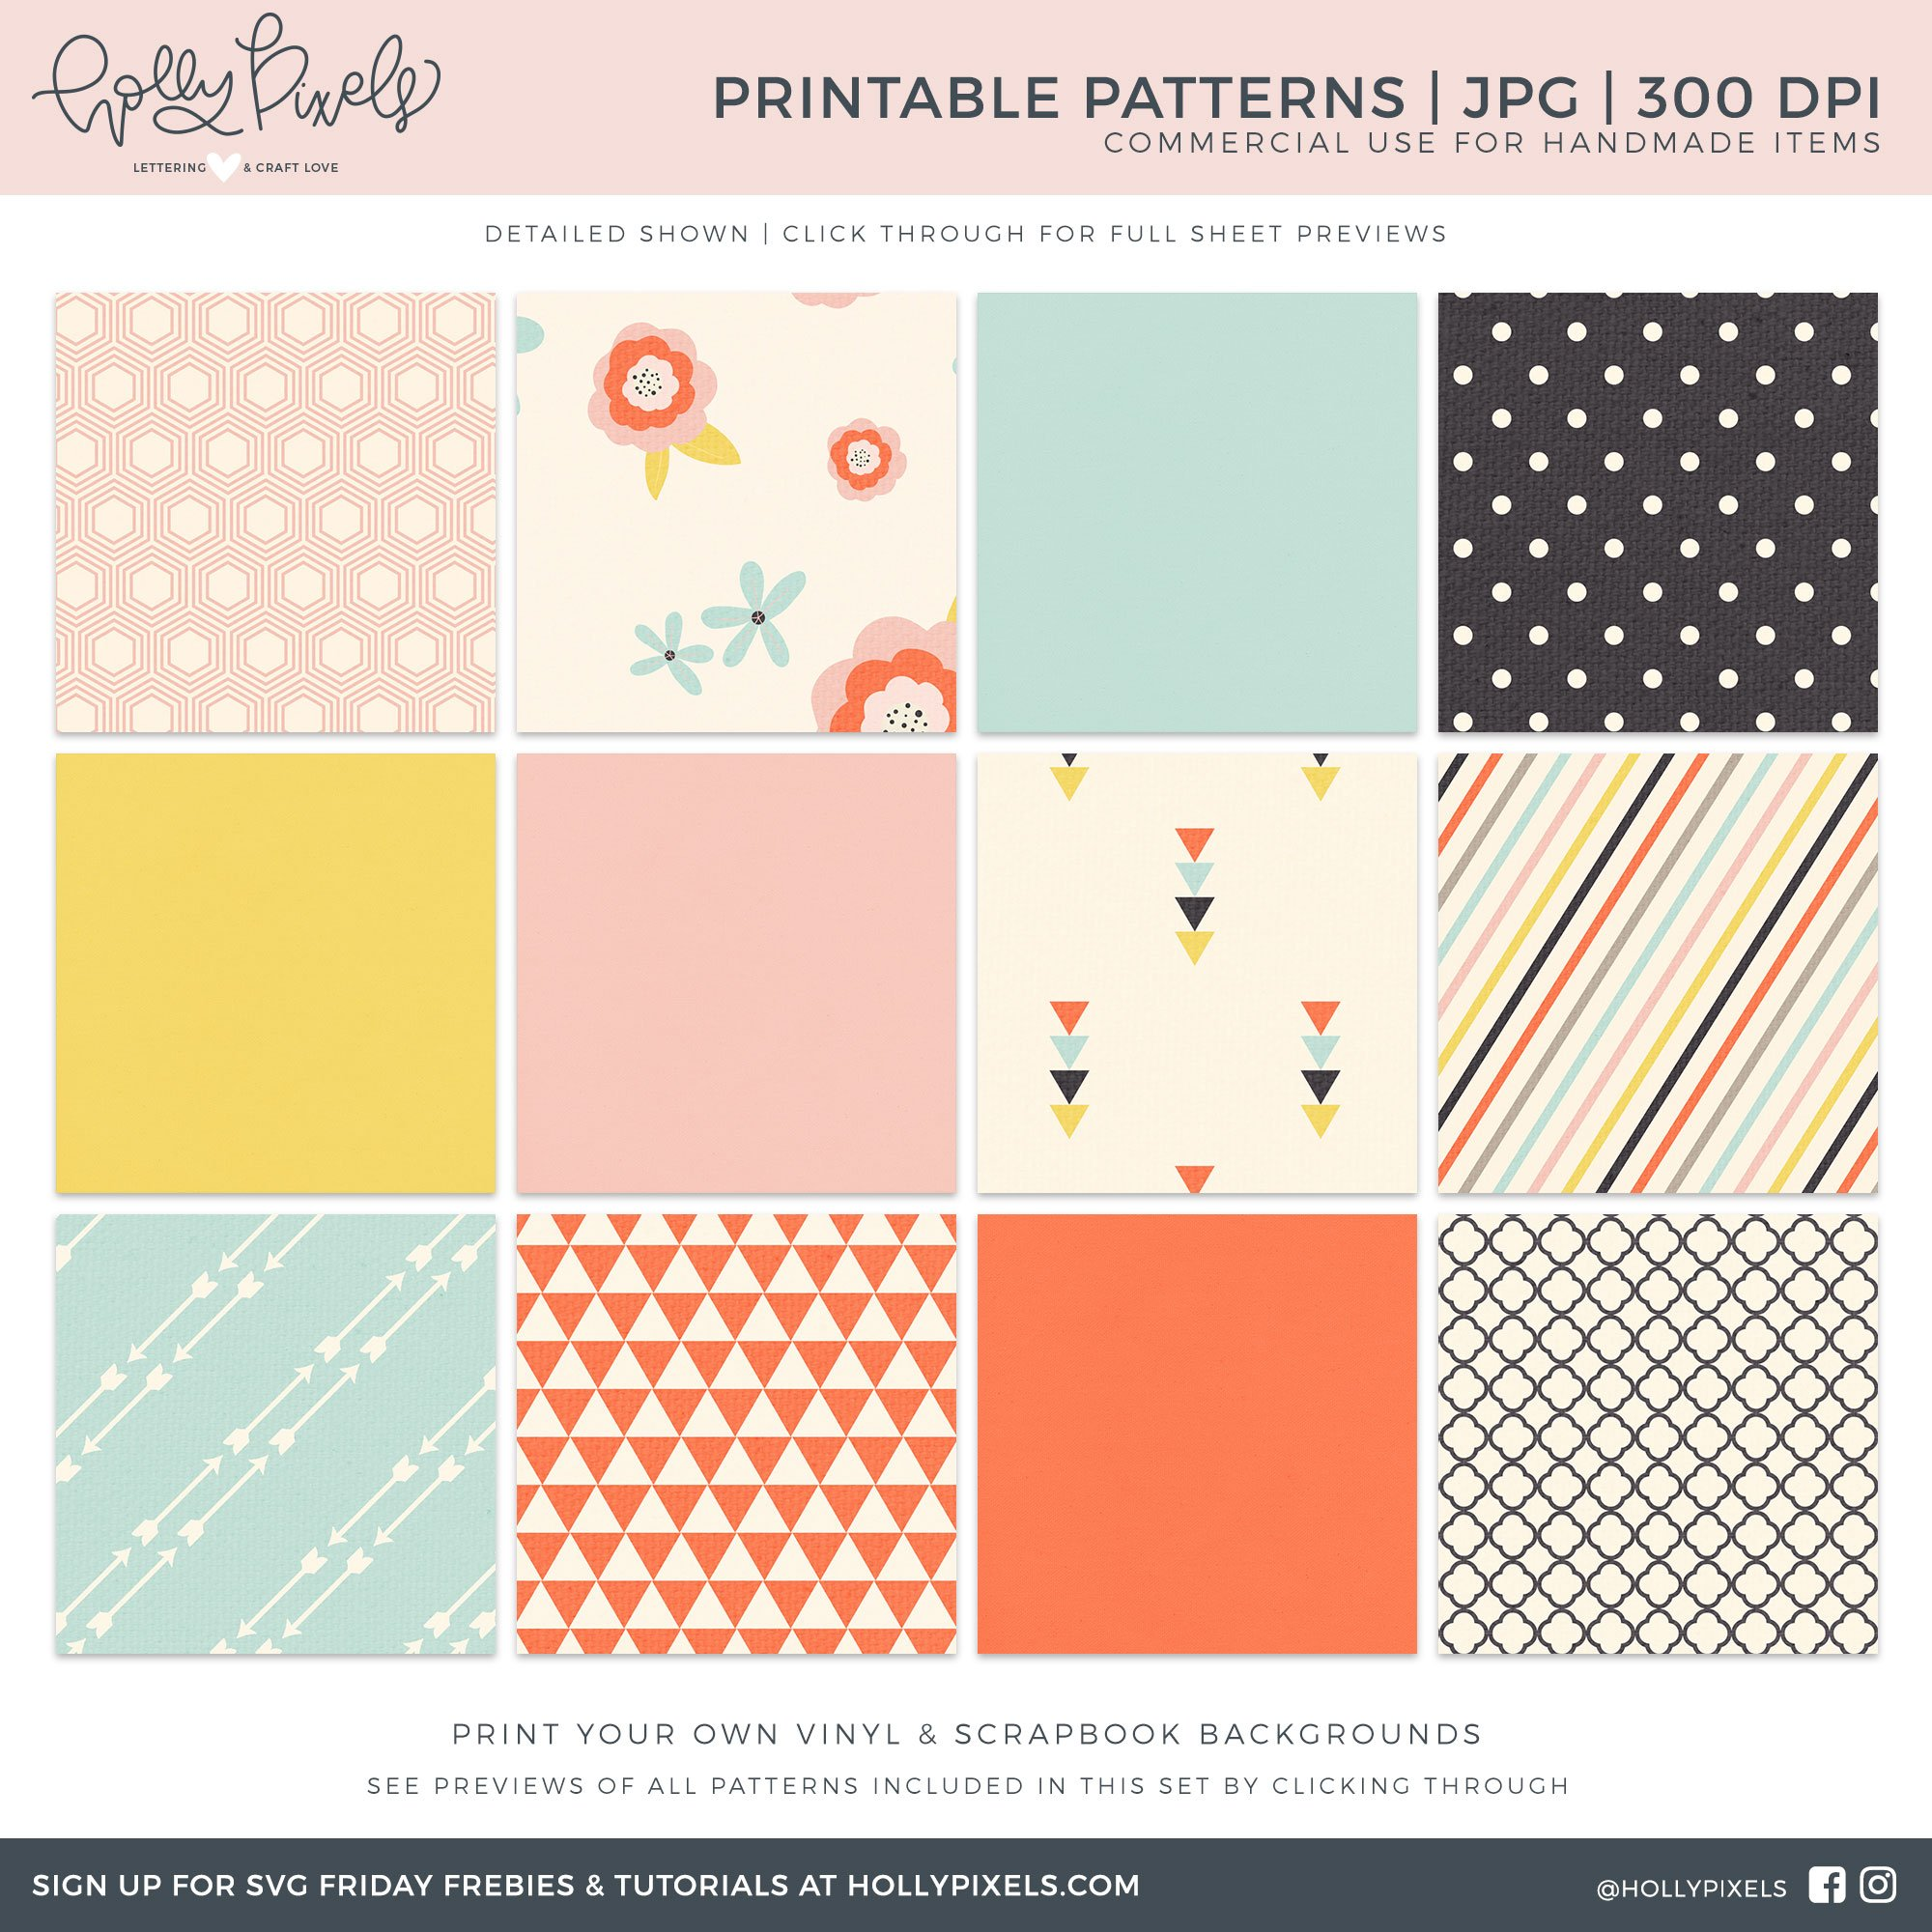 Printable Vinyl Patterns Printable Backgrounds Right Now 2000x2000